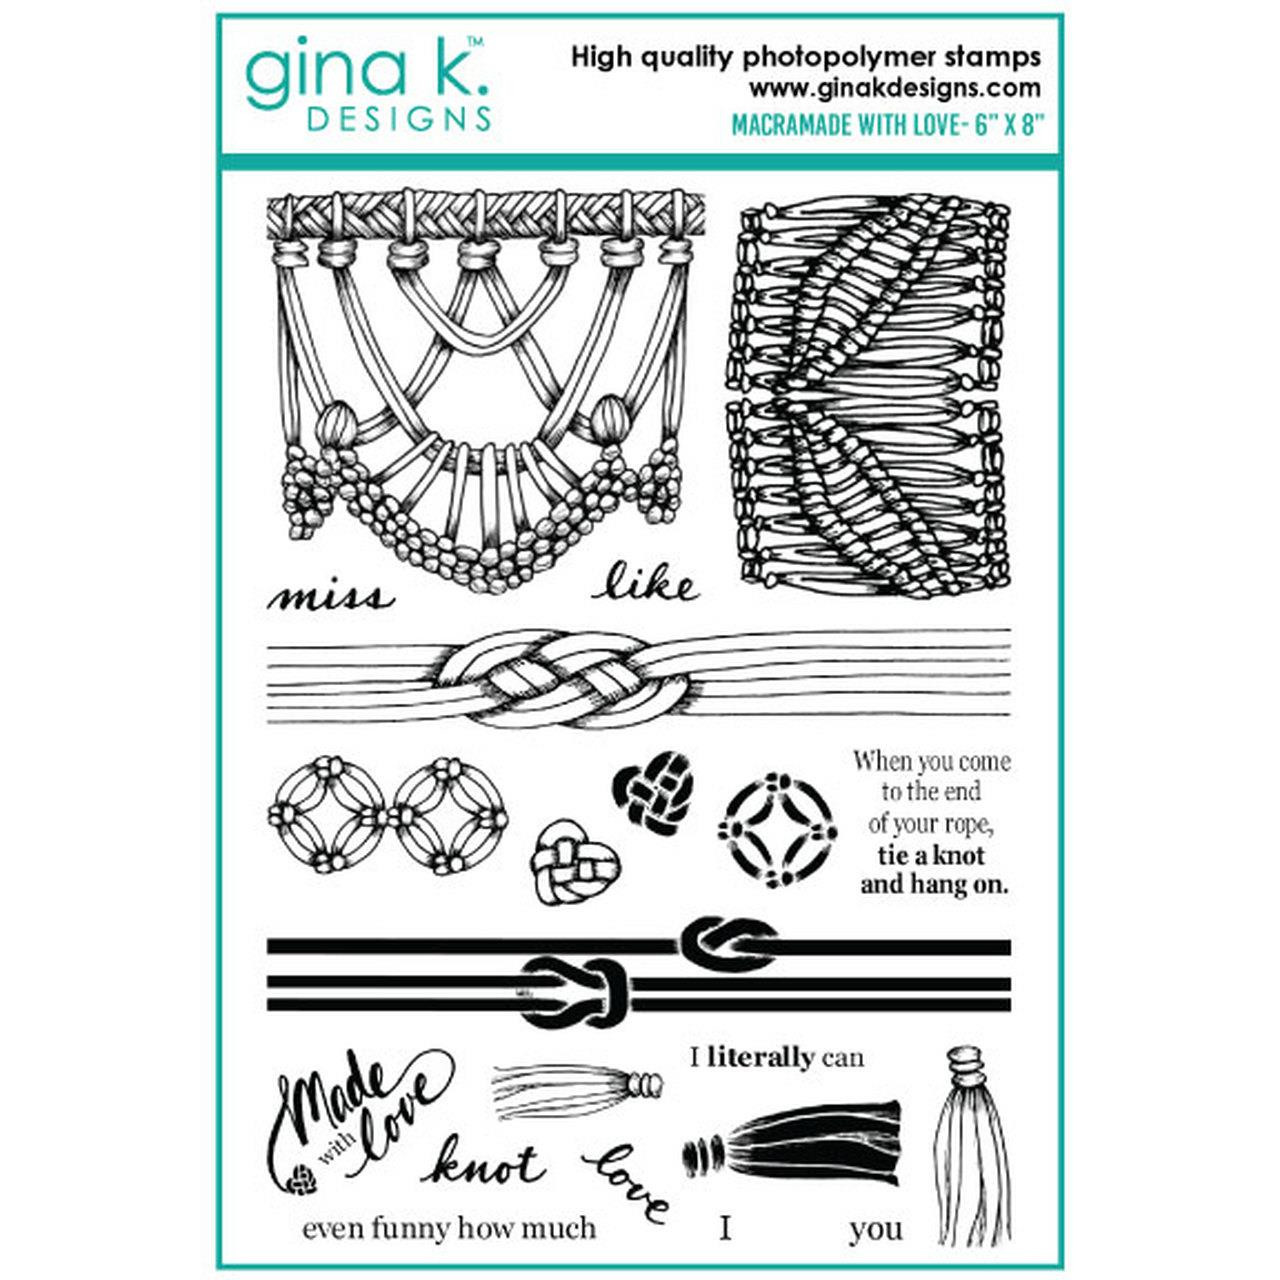 Macramade with Love, Gina K Designs Clear Stamps - 609015526538